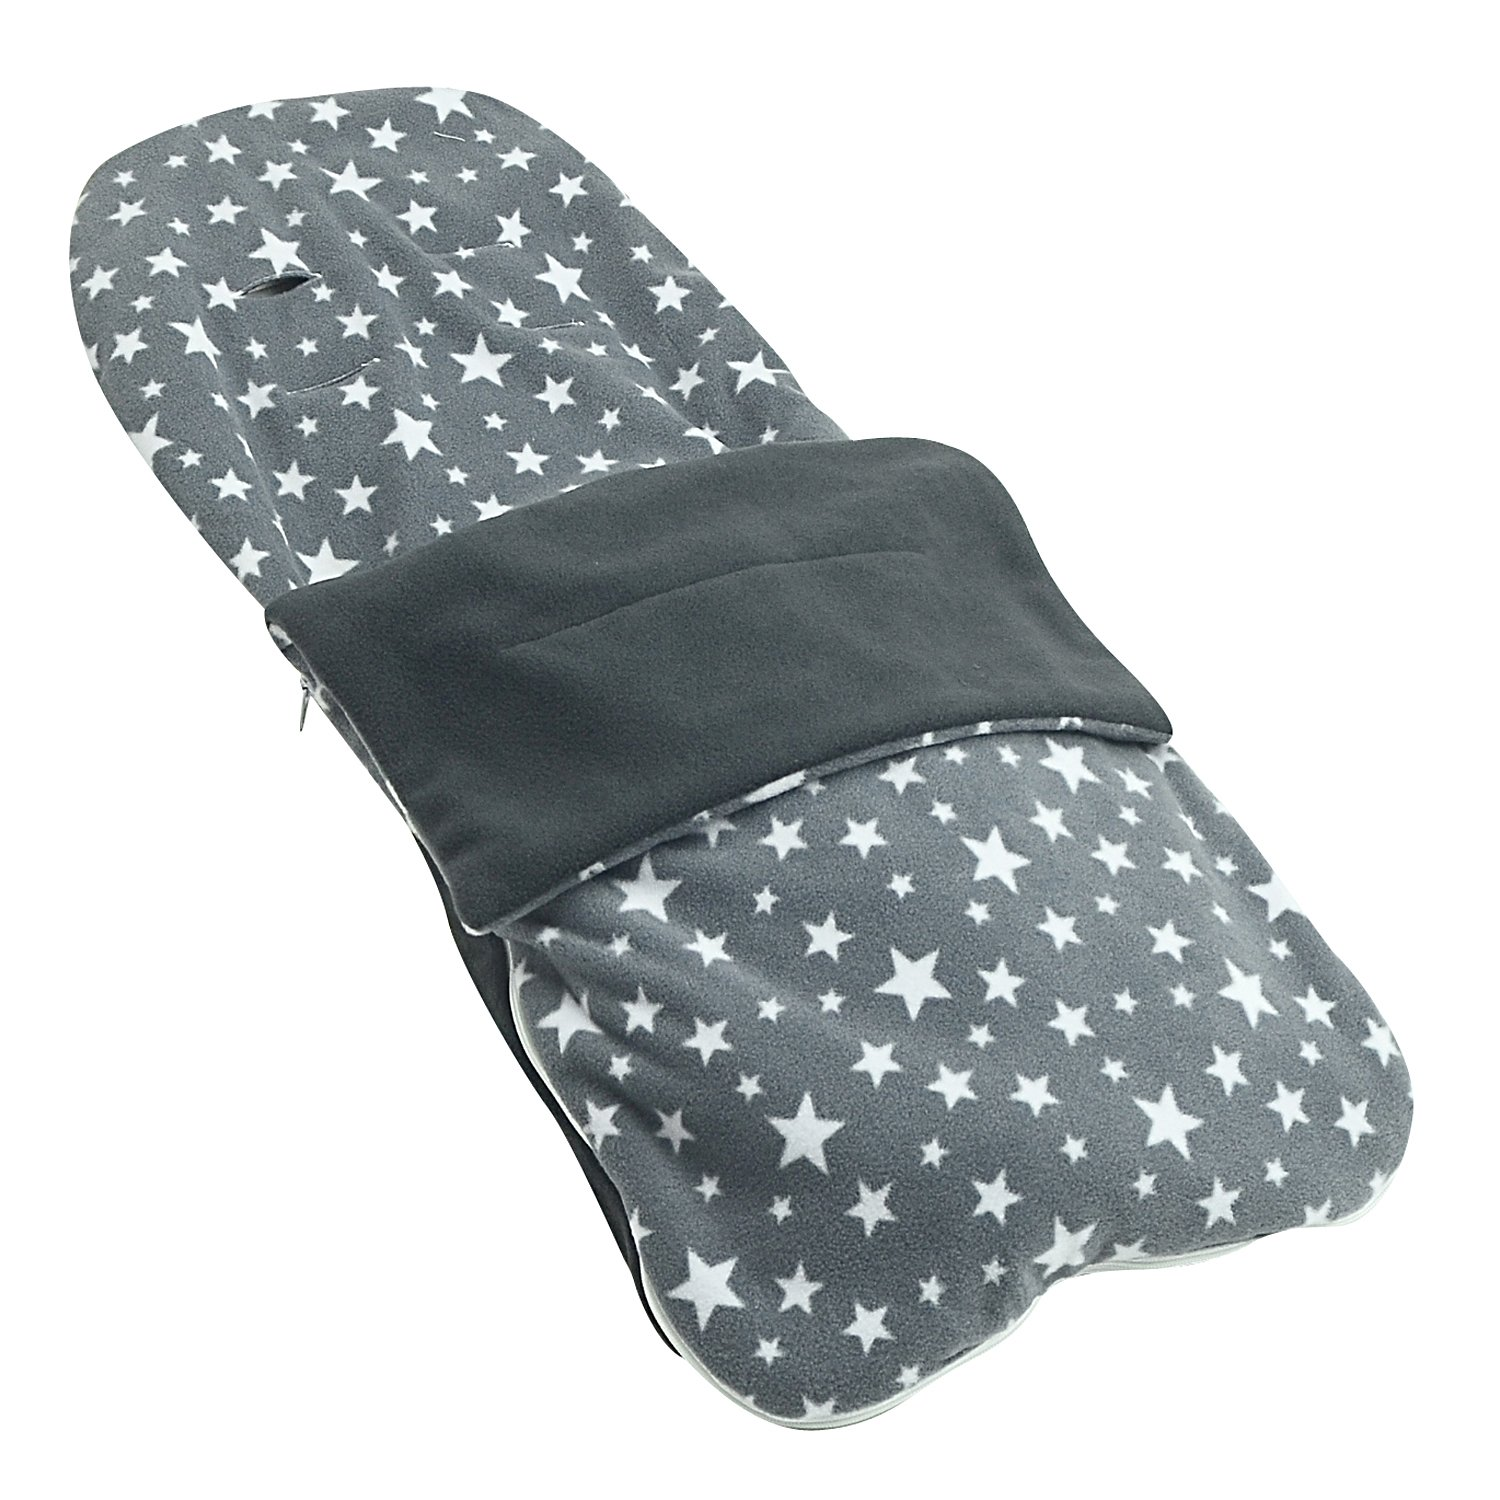 Grey Star Snuggle Summer Footmuff Compatible With Out N About Stroller Buggy Pram